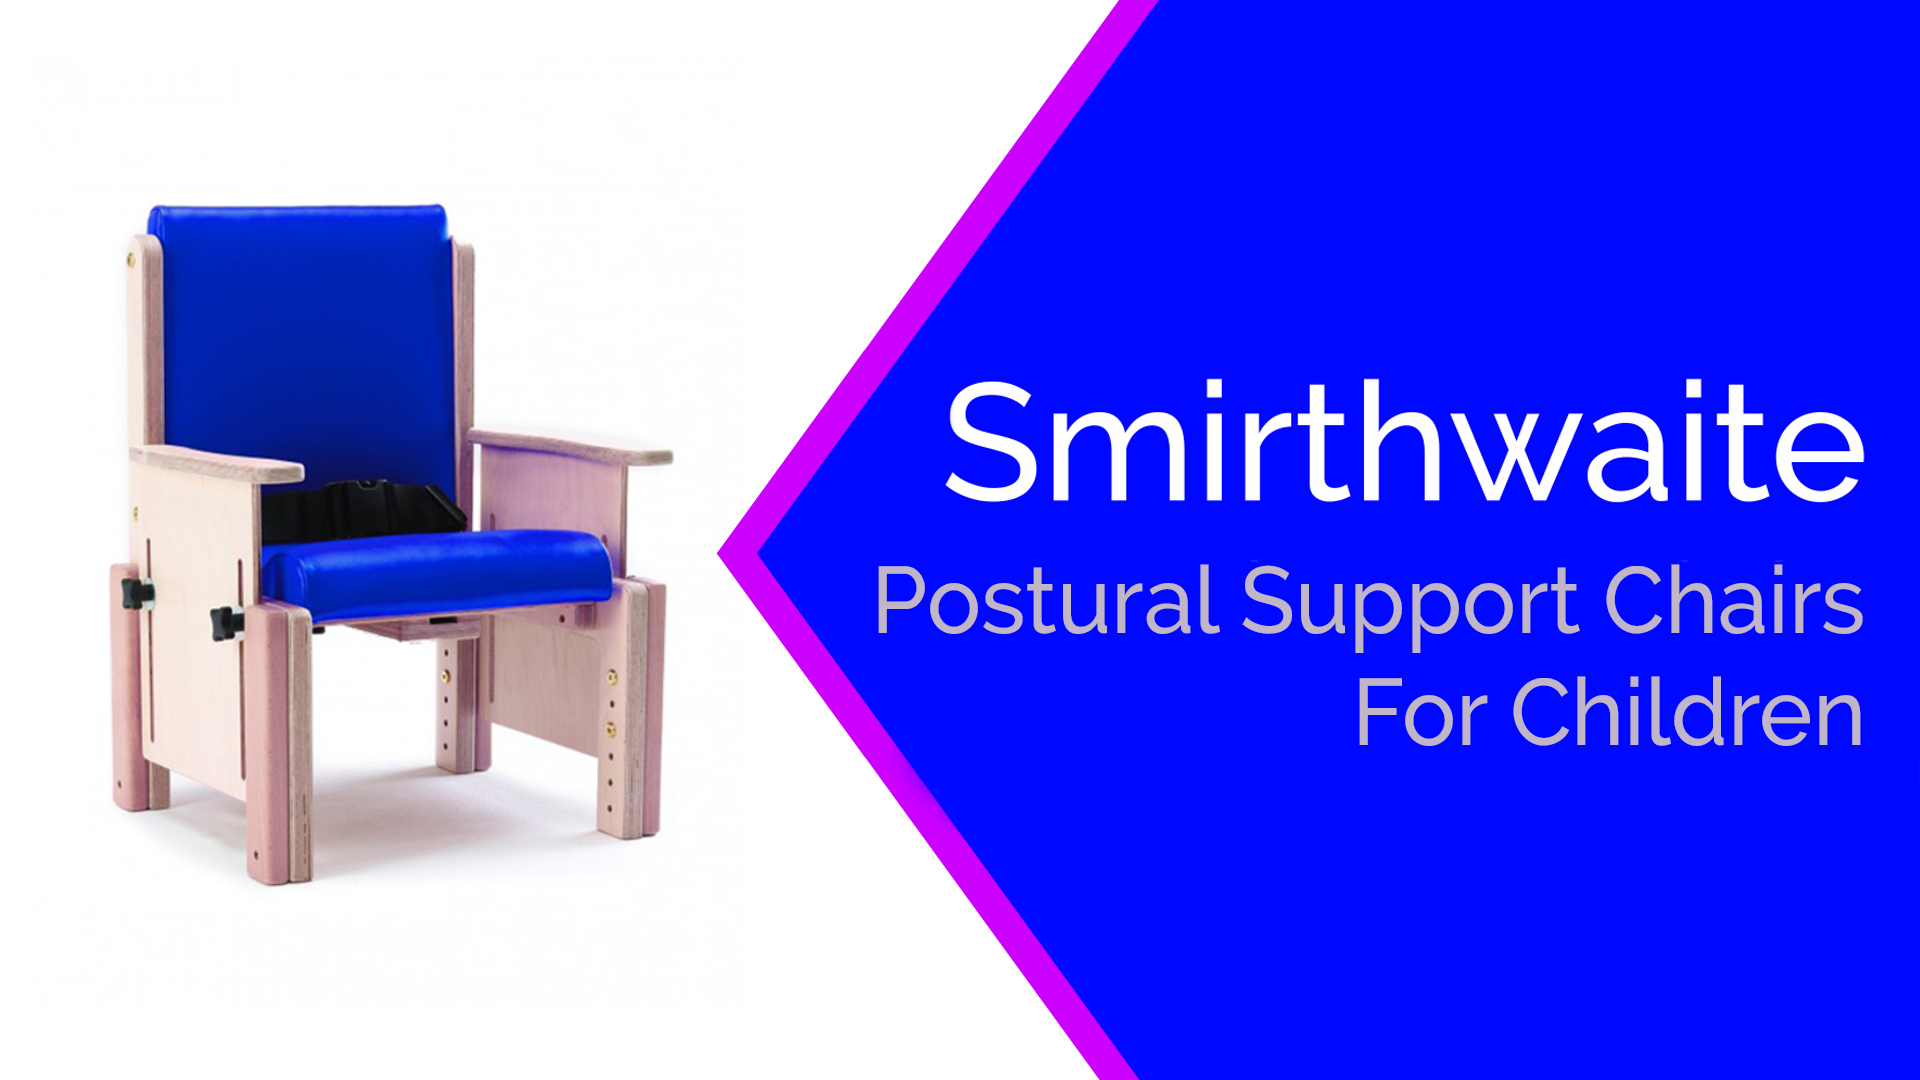 Smirthwaite Postural Support Chairs For Children